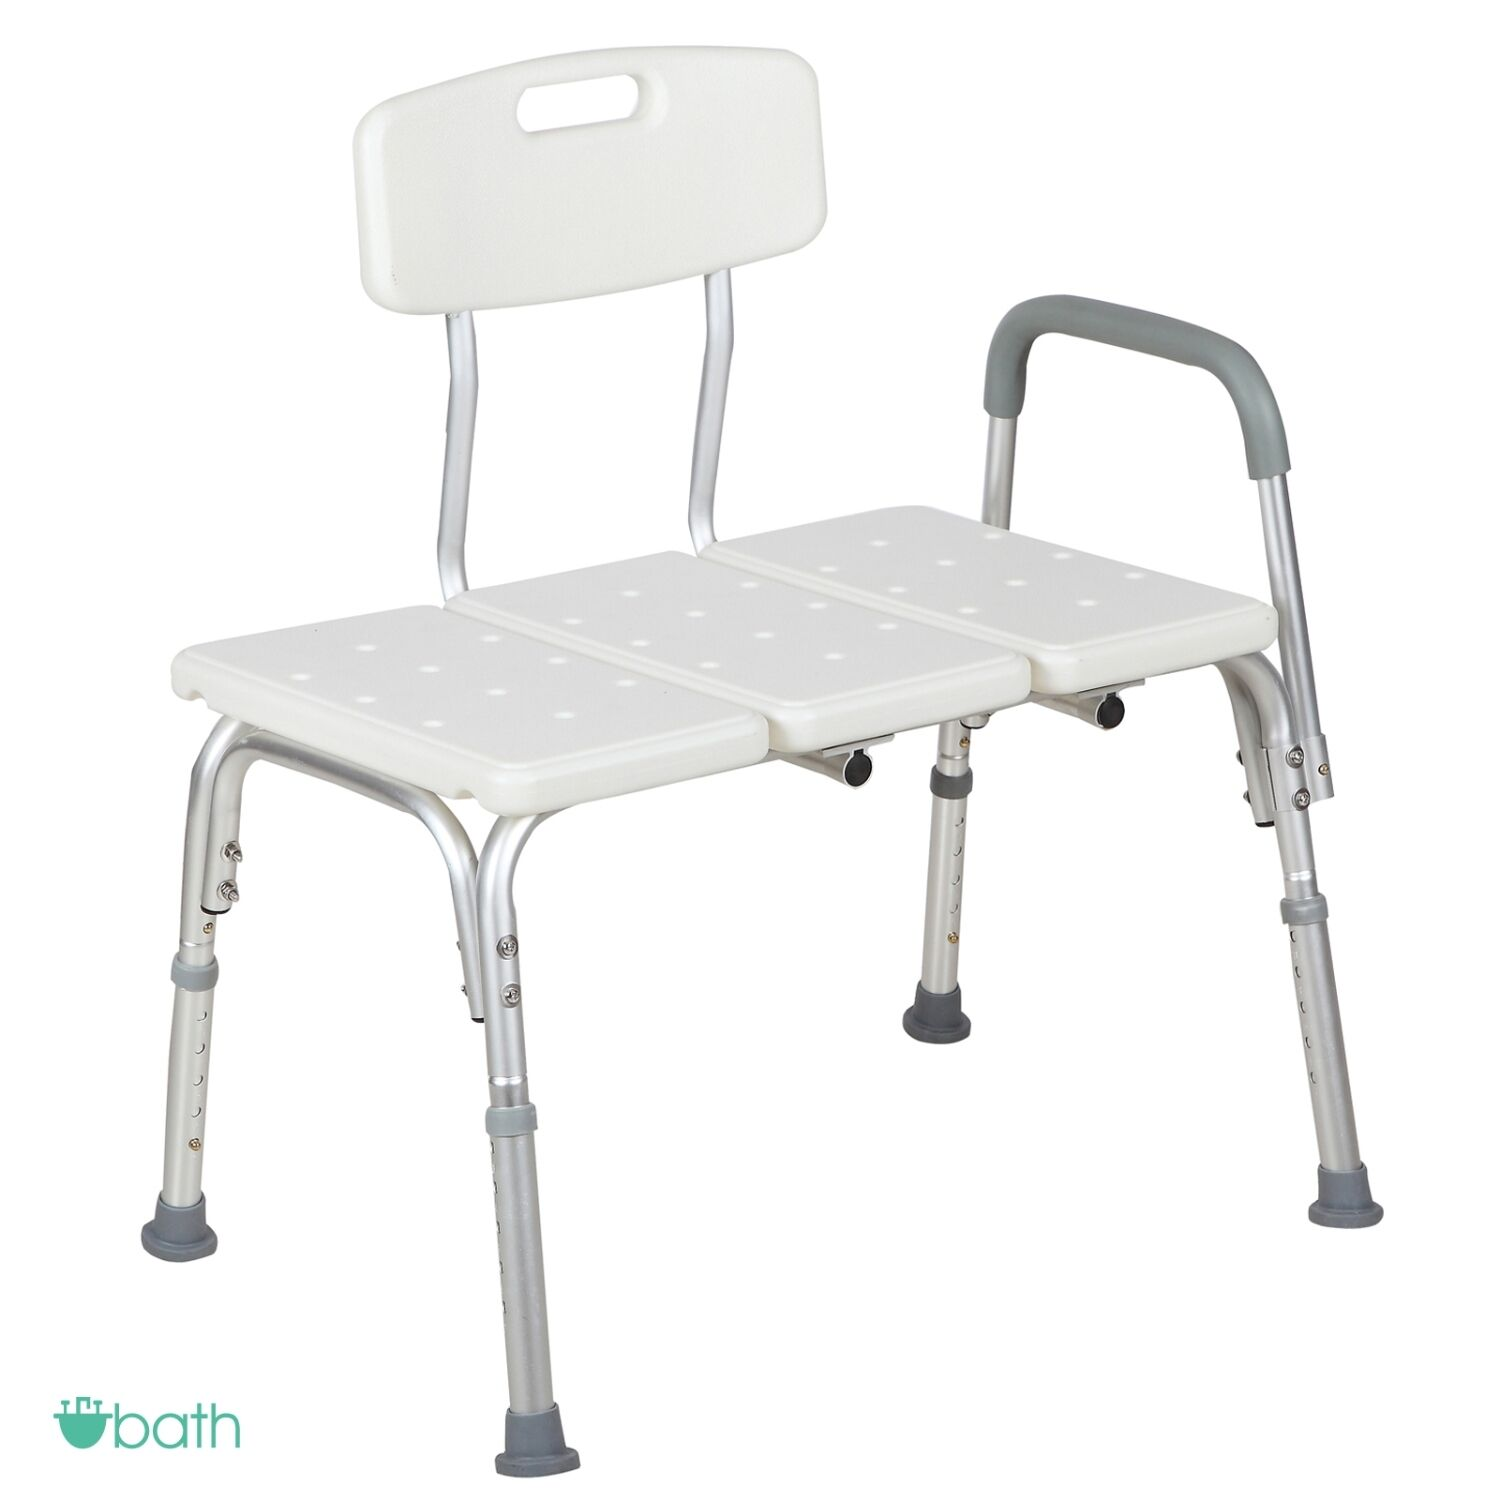 medical shower chairs chair covers wedding edinburgh adjustable bench bath tub stool seat back and details about arms